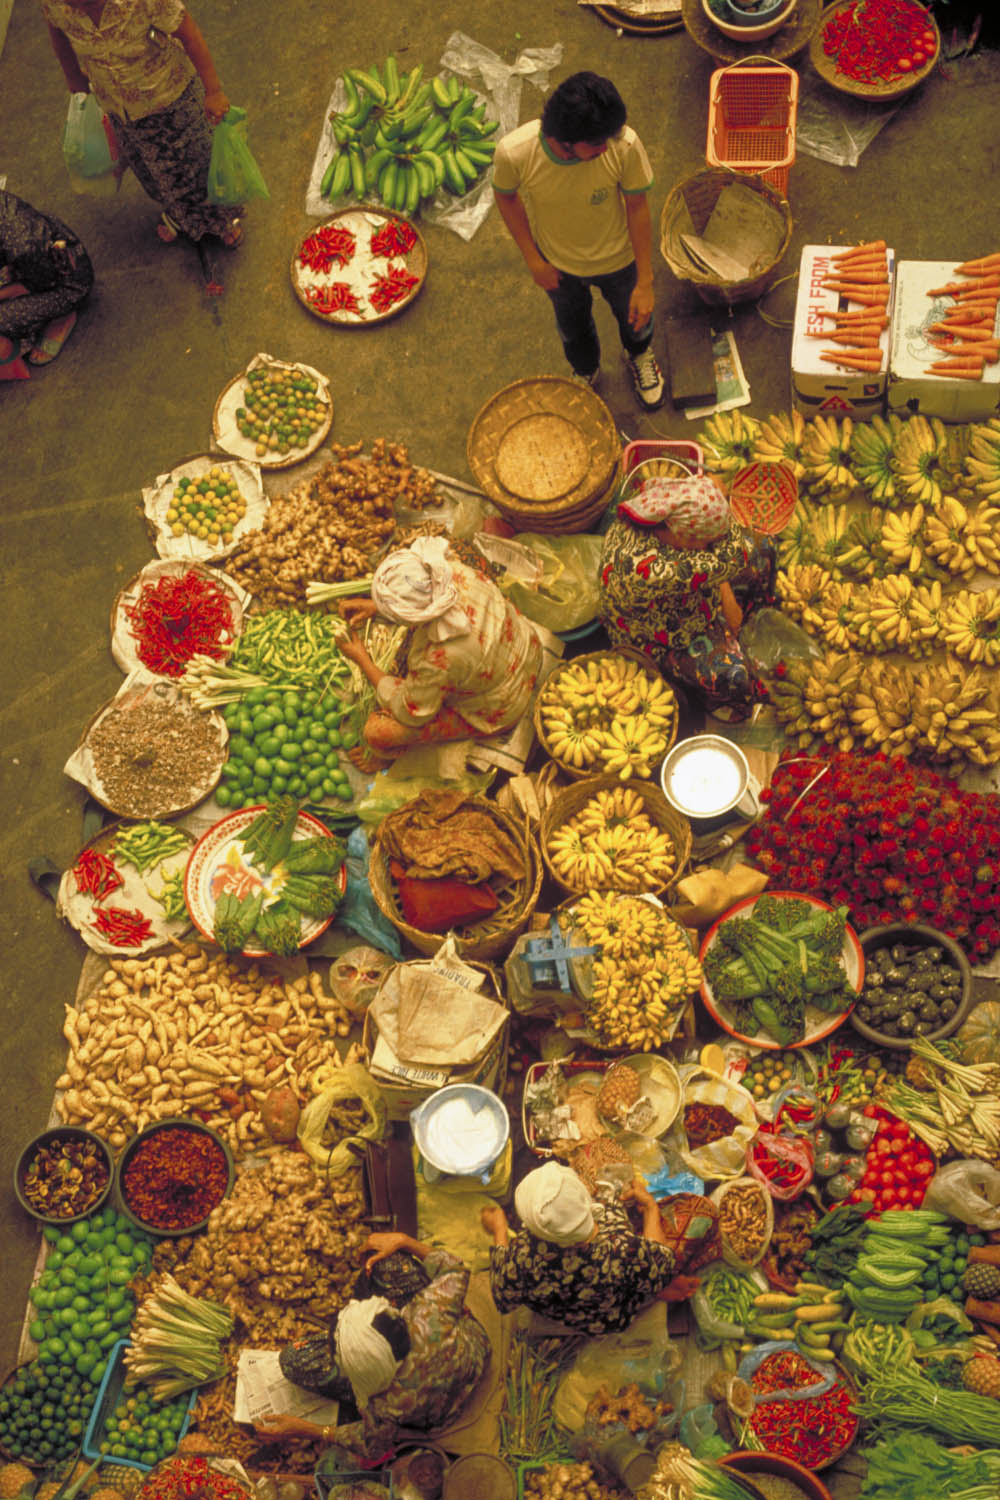 the market from a bird's eye view